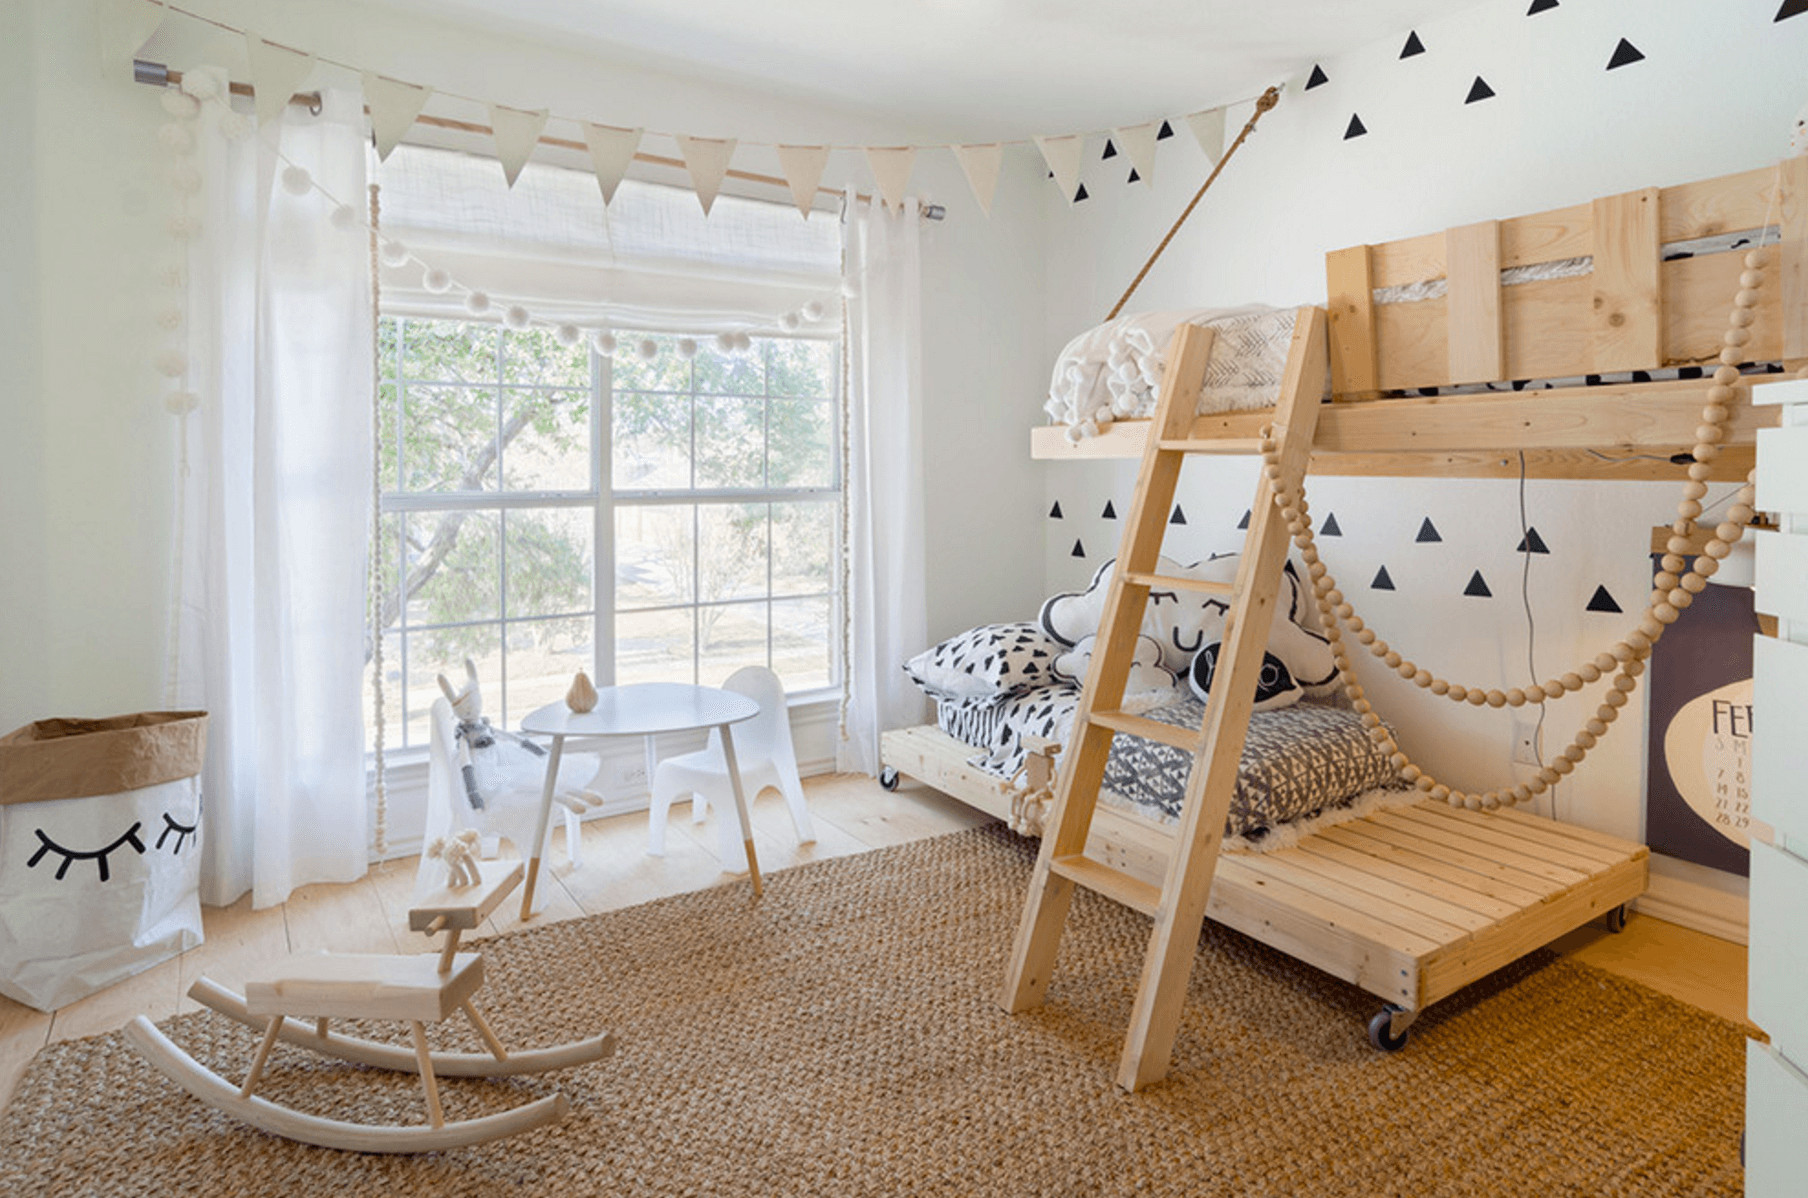 Best ideas about Kids Room Themes . Save or Pin Inspiring and Playful Kids Room Ideas Decoration Channel Now.